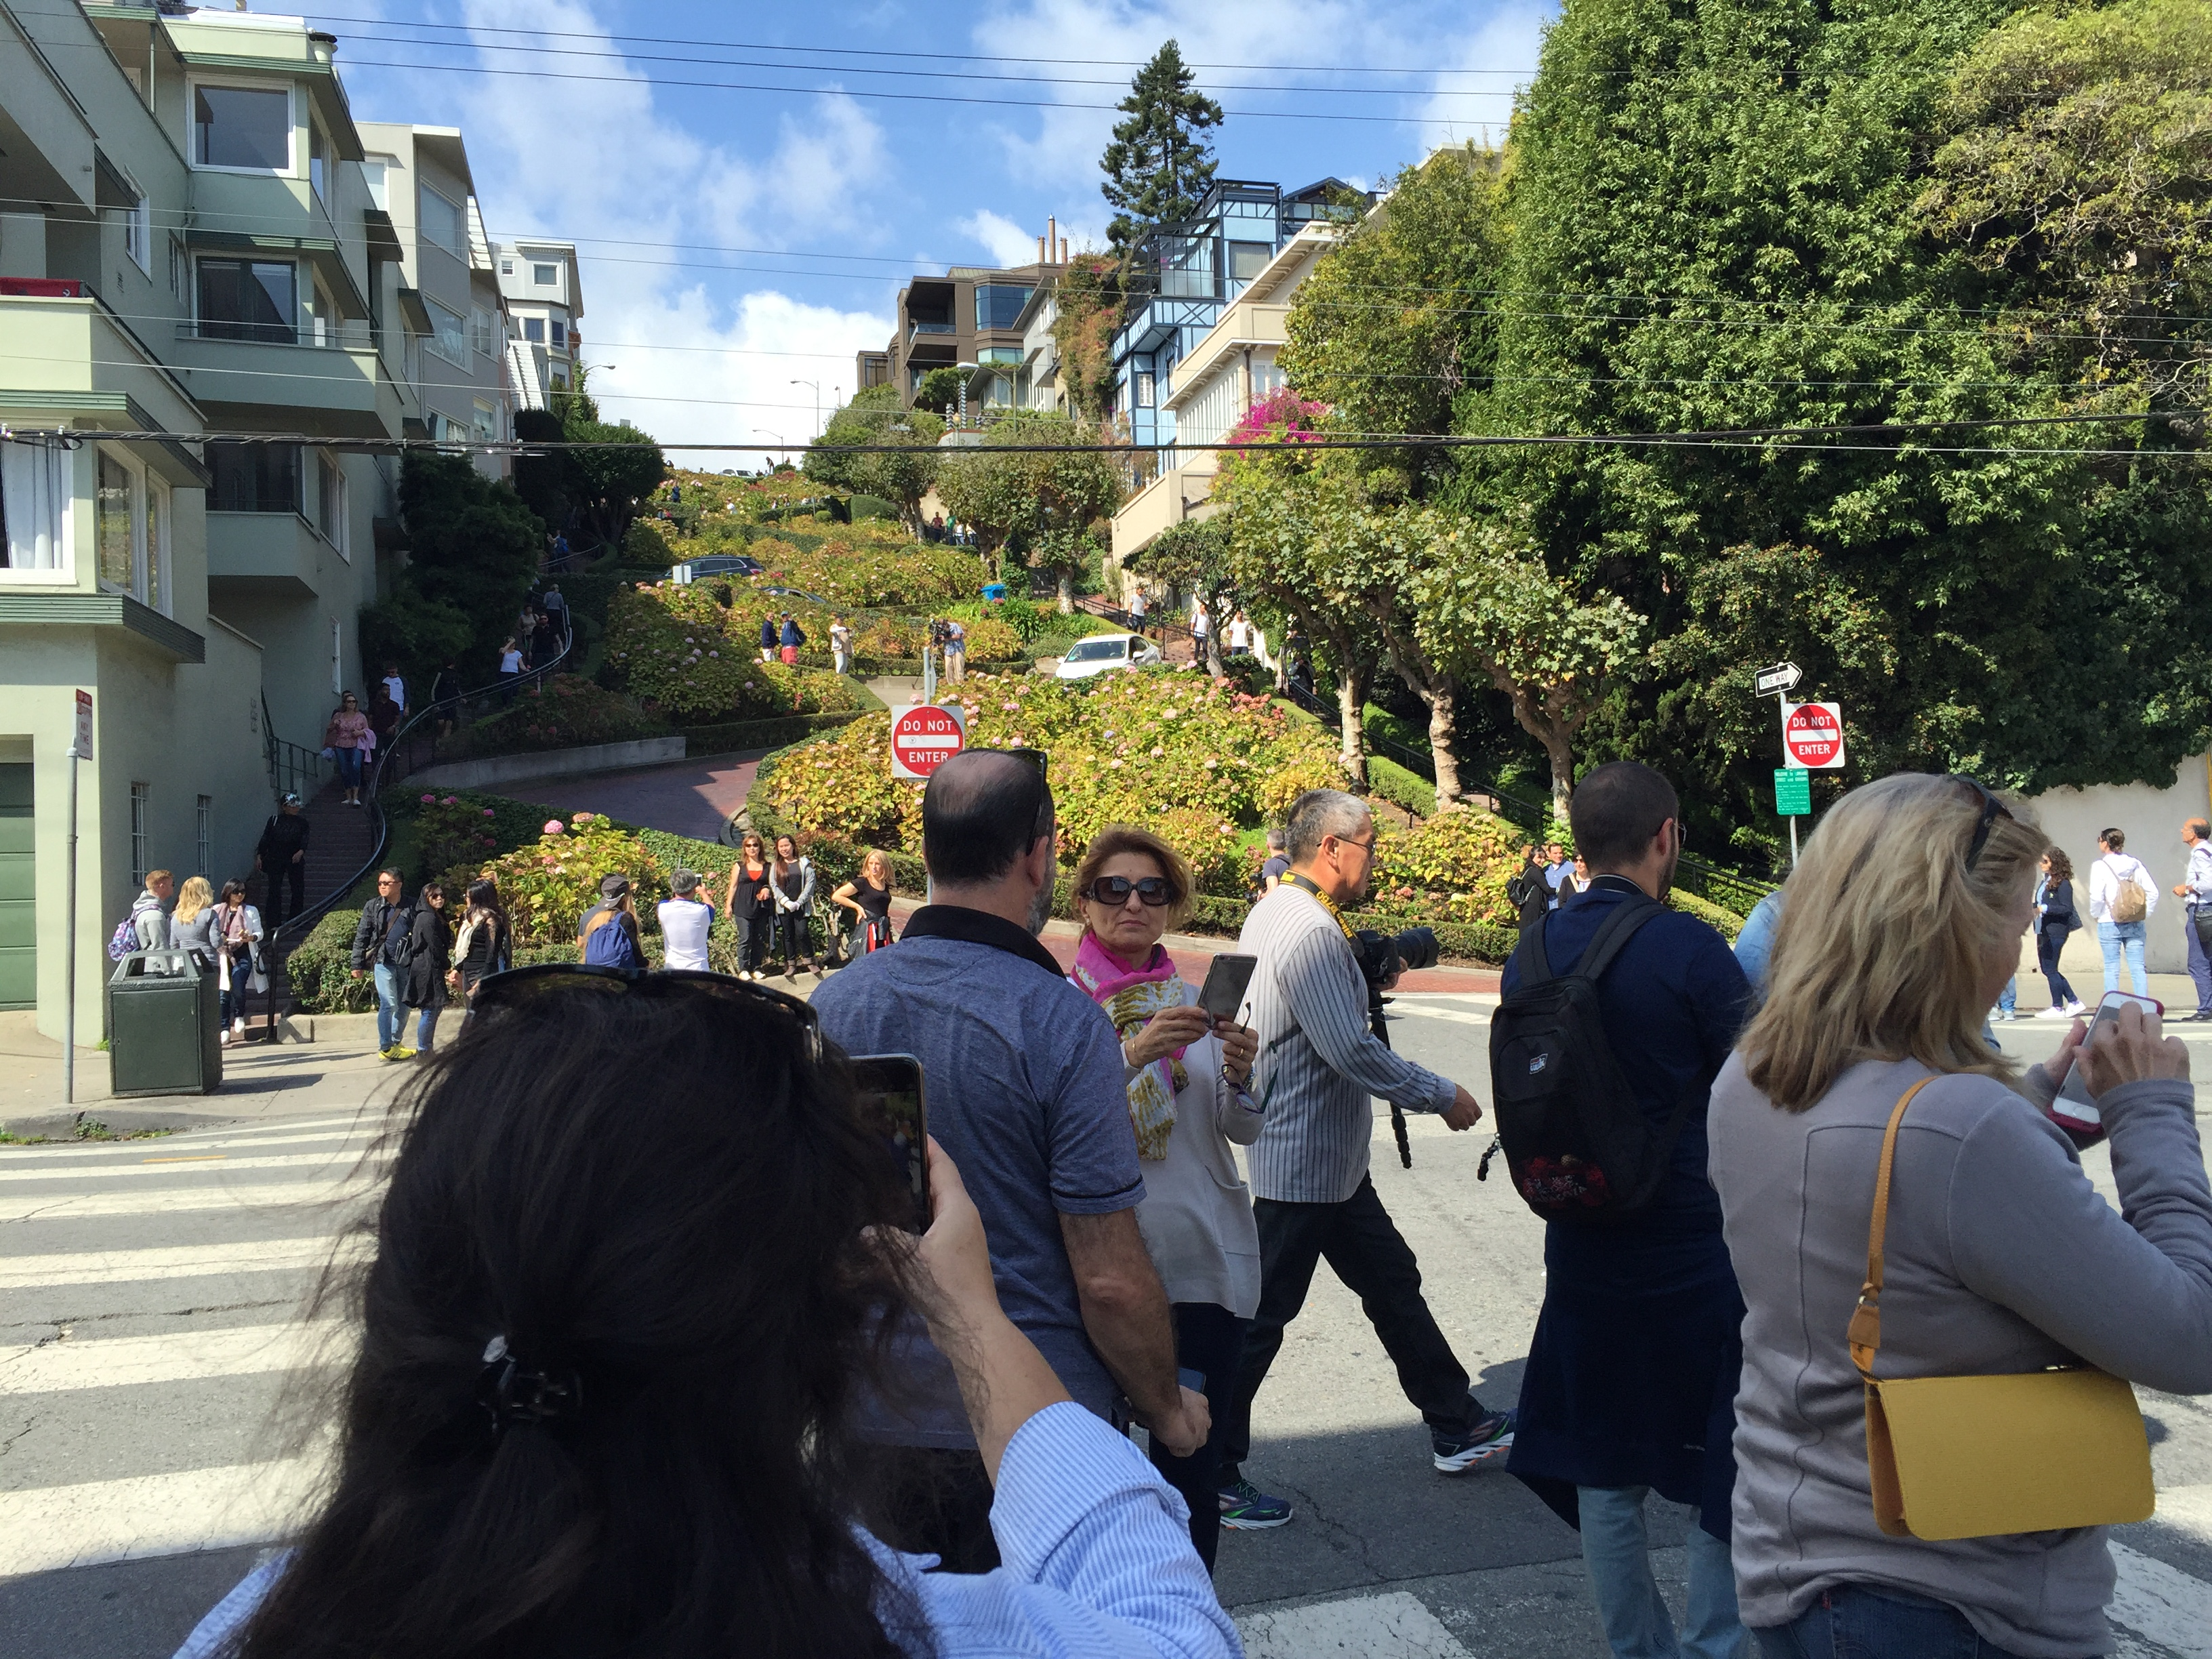 Tourists snap pictures on Lombard Street in San Francisco where a toll is being proposed as one idea to relieve traffic congestion. Sept. 13, 2016